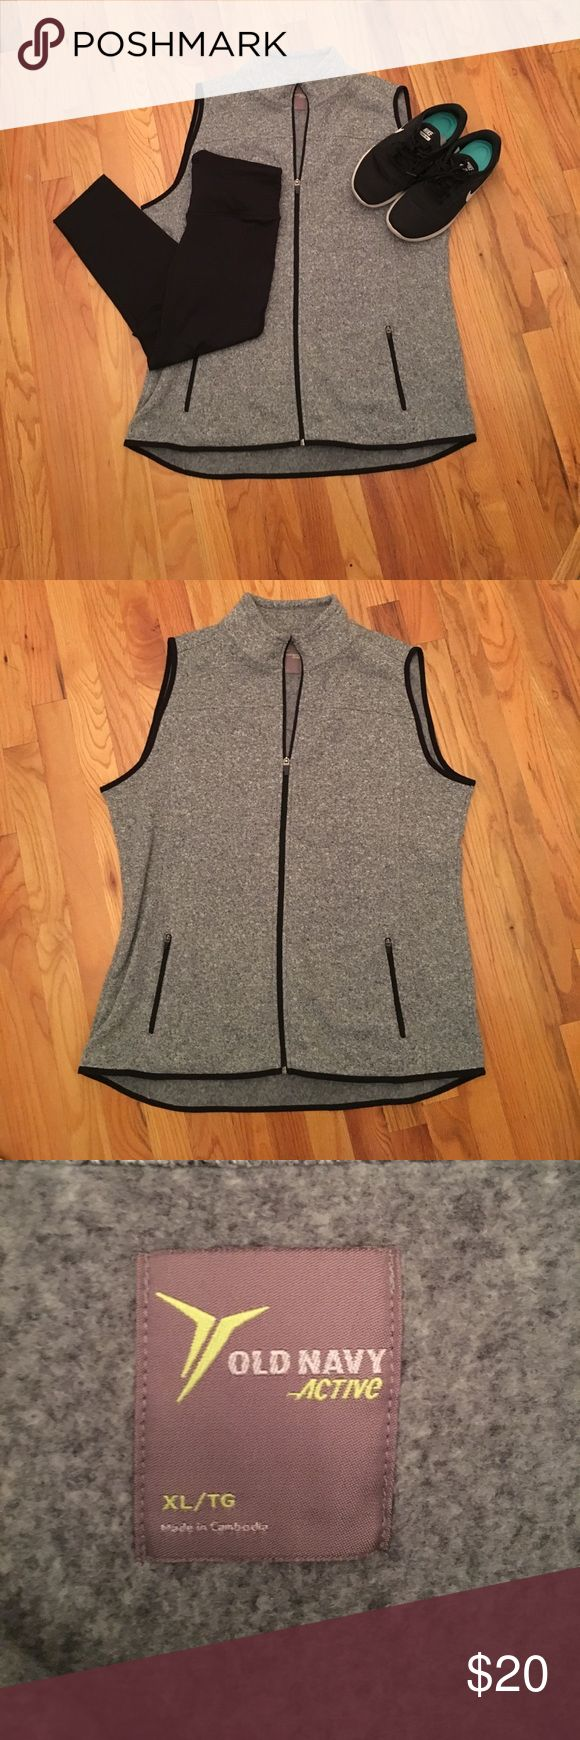 XL Old Navy Active vest XL Old Navy Active vest. Has two front pockets. Great for the approaching cold weather and trying to stay active! Old Navy Jackets & Coats Vests